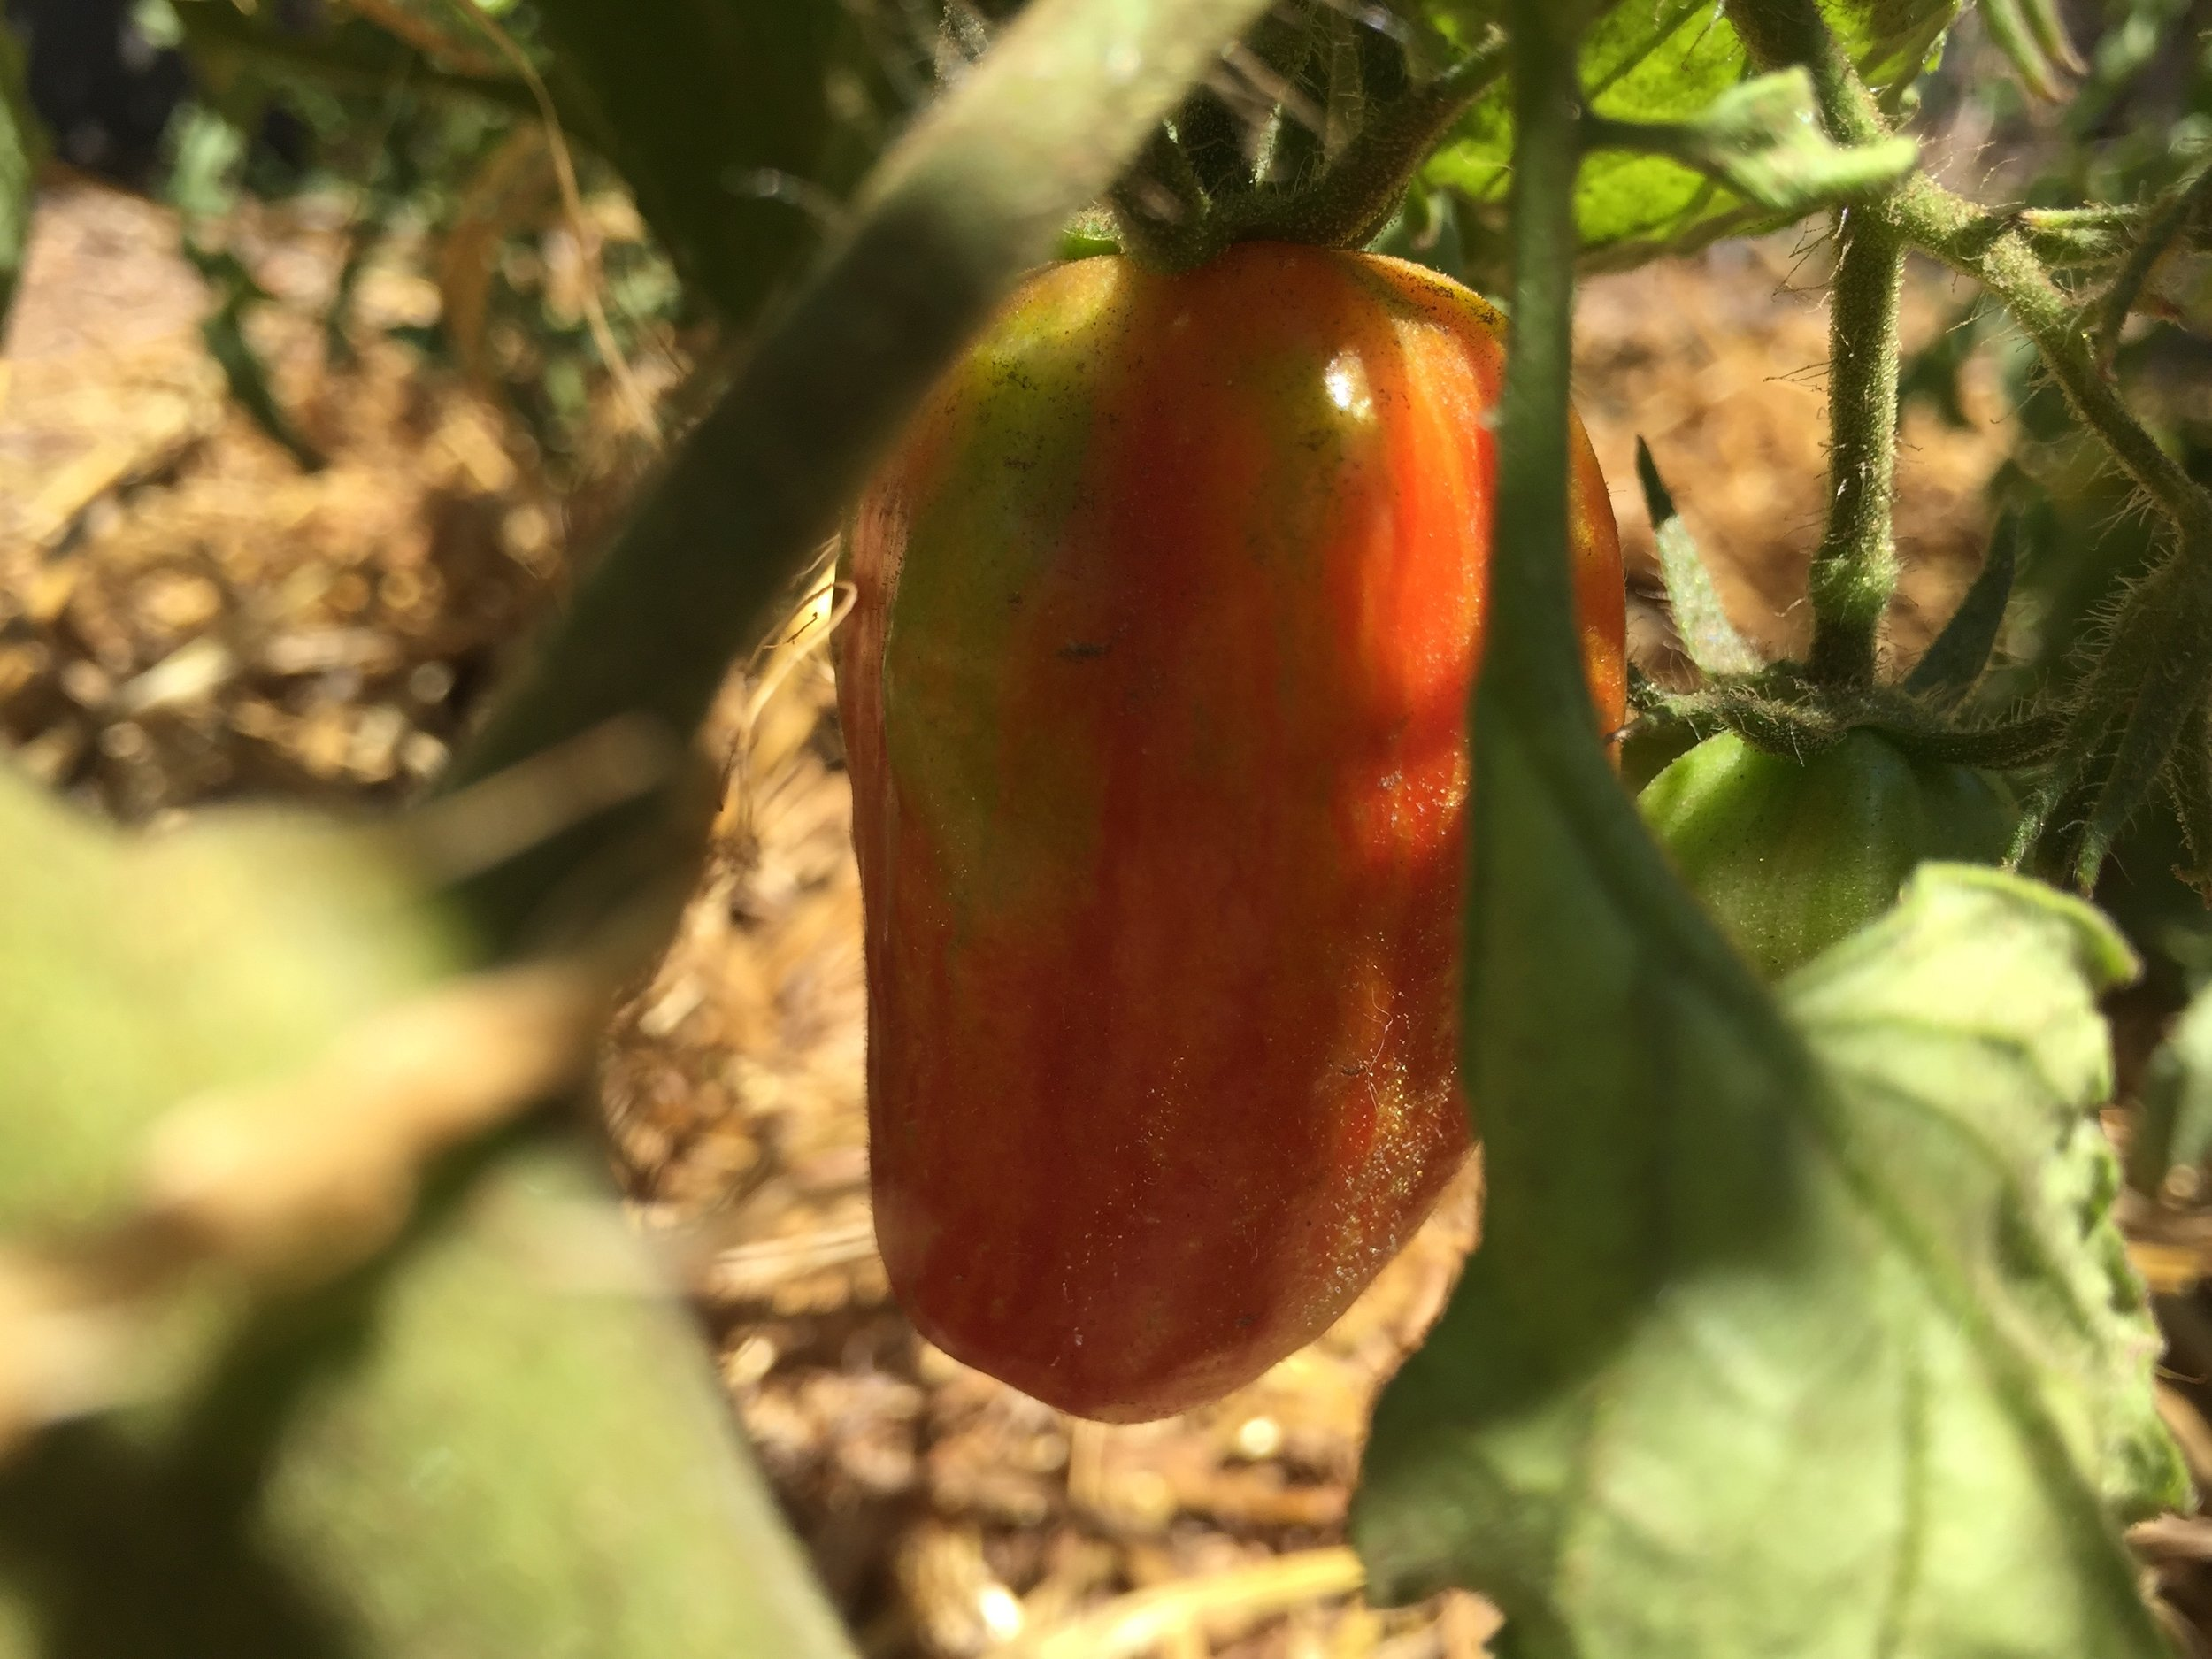 'Speckled Roman' paste tomato, miraculously peck-free